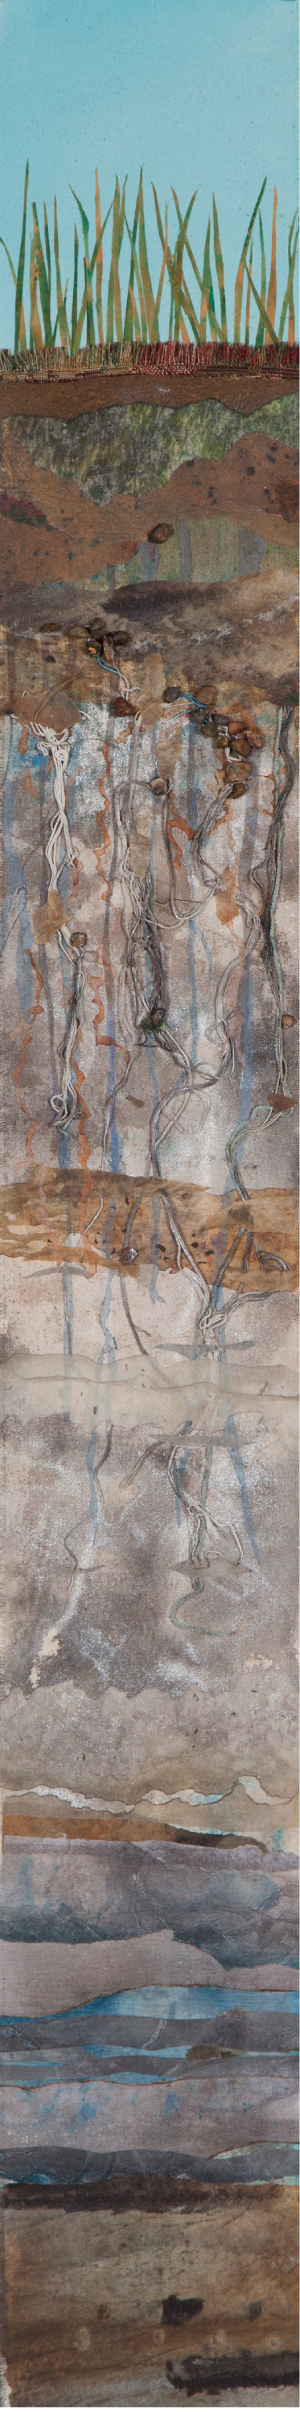 "Soil Horizon 12, 38""x6"" mixed media fiber art.  Fiber mixed media showing the lively dance of roots and grasses in soils and subsoils."